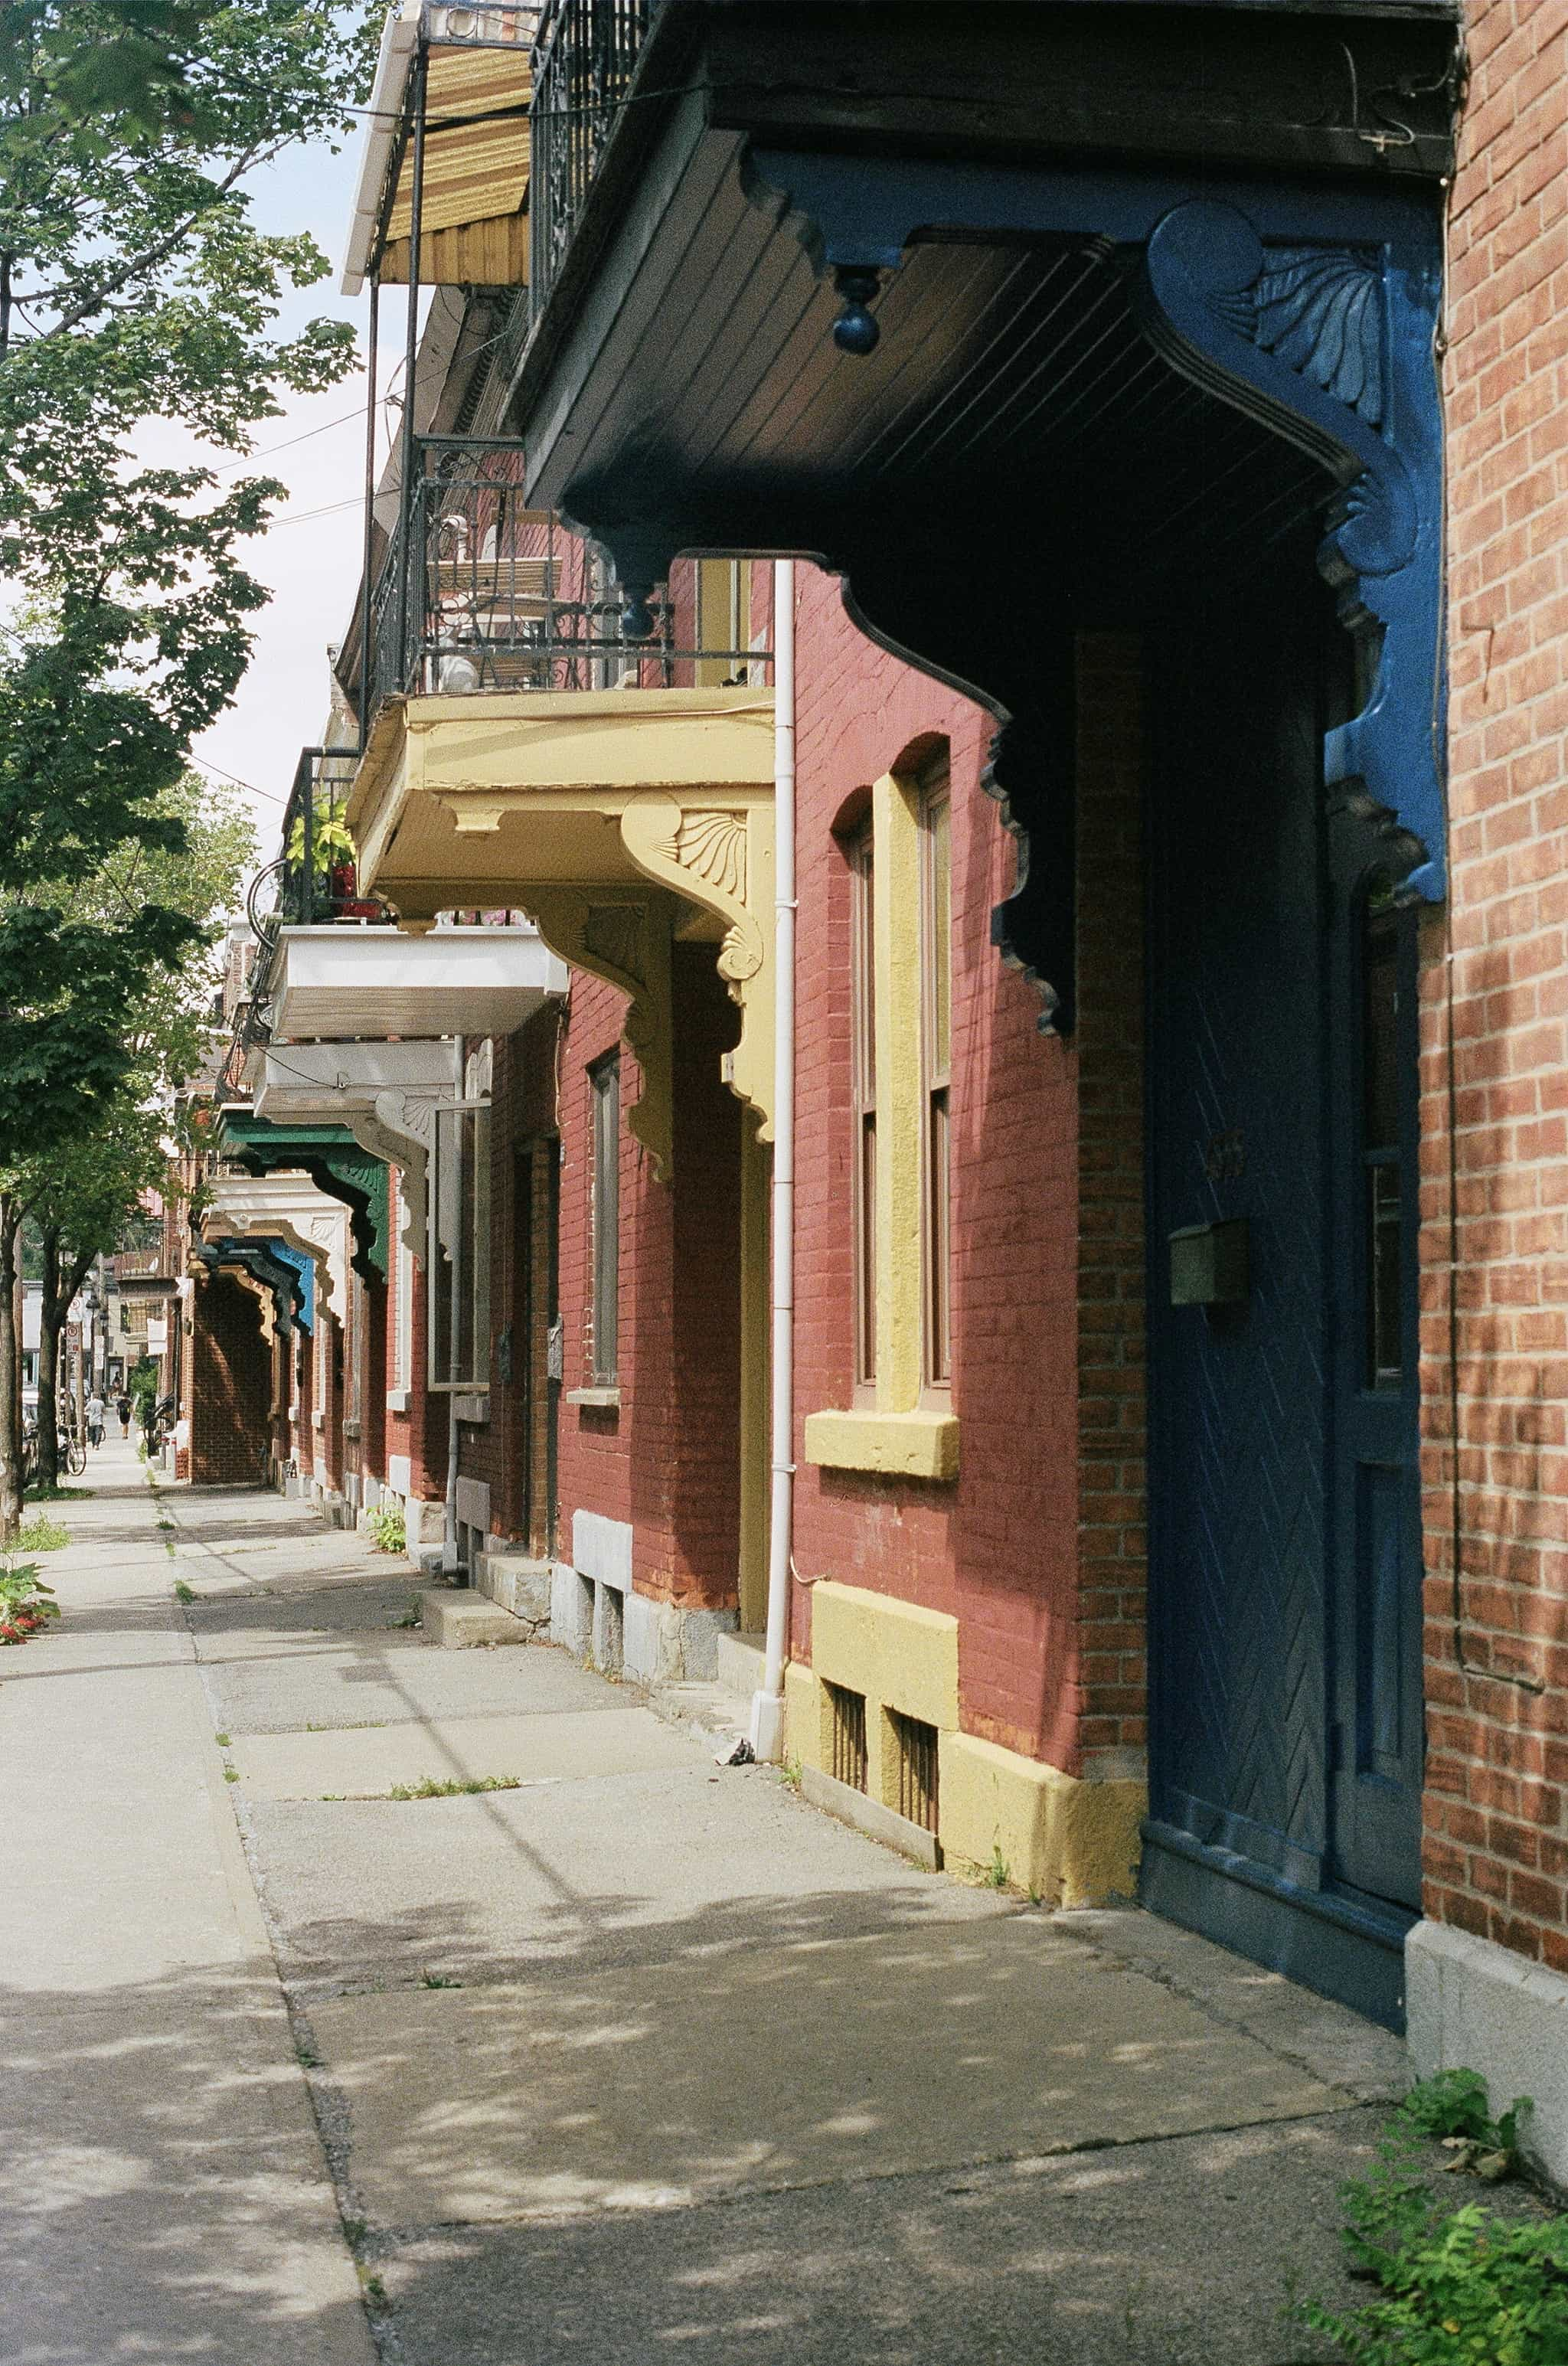 A Year In Canada On 35mm